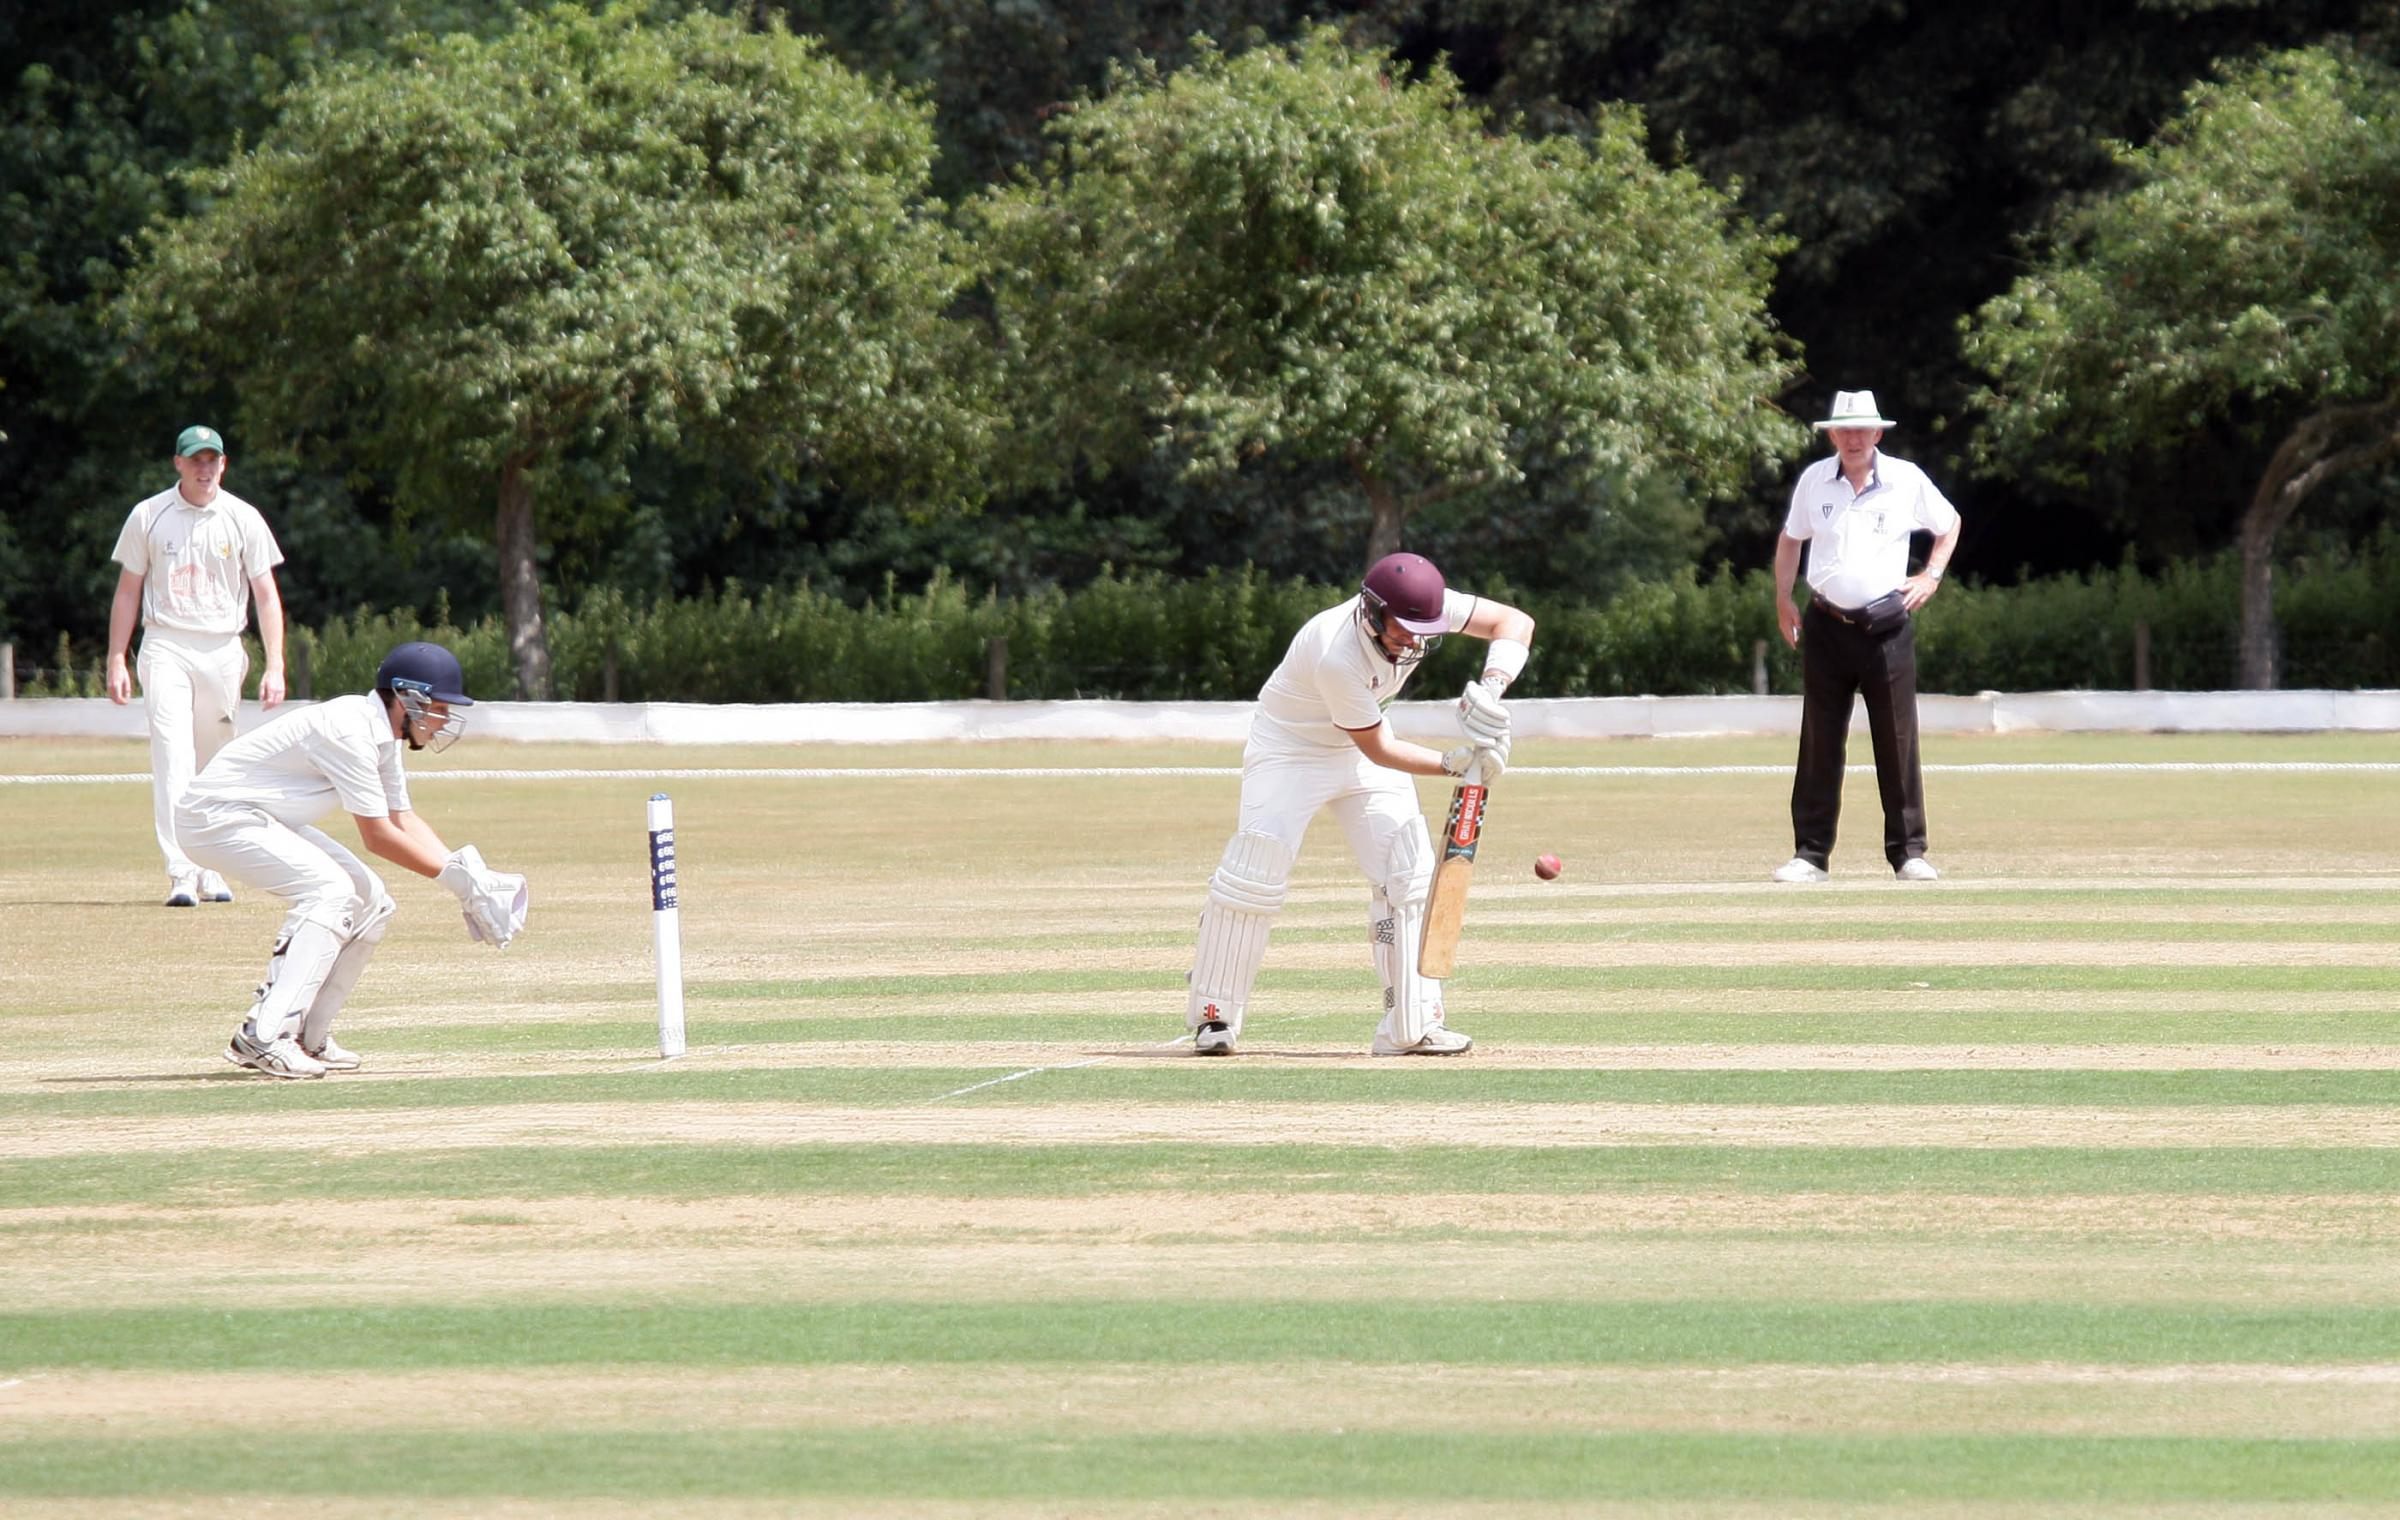 TOP SCORE: Gordon Whorlow hit 69 for North Perrott against Wembdon on Saturday. Pic: Adrian Hopper